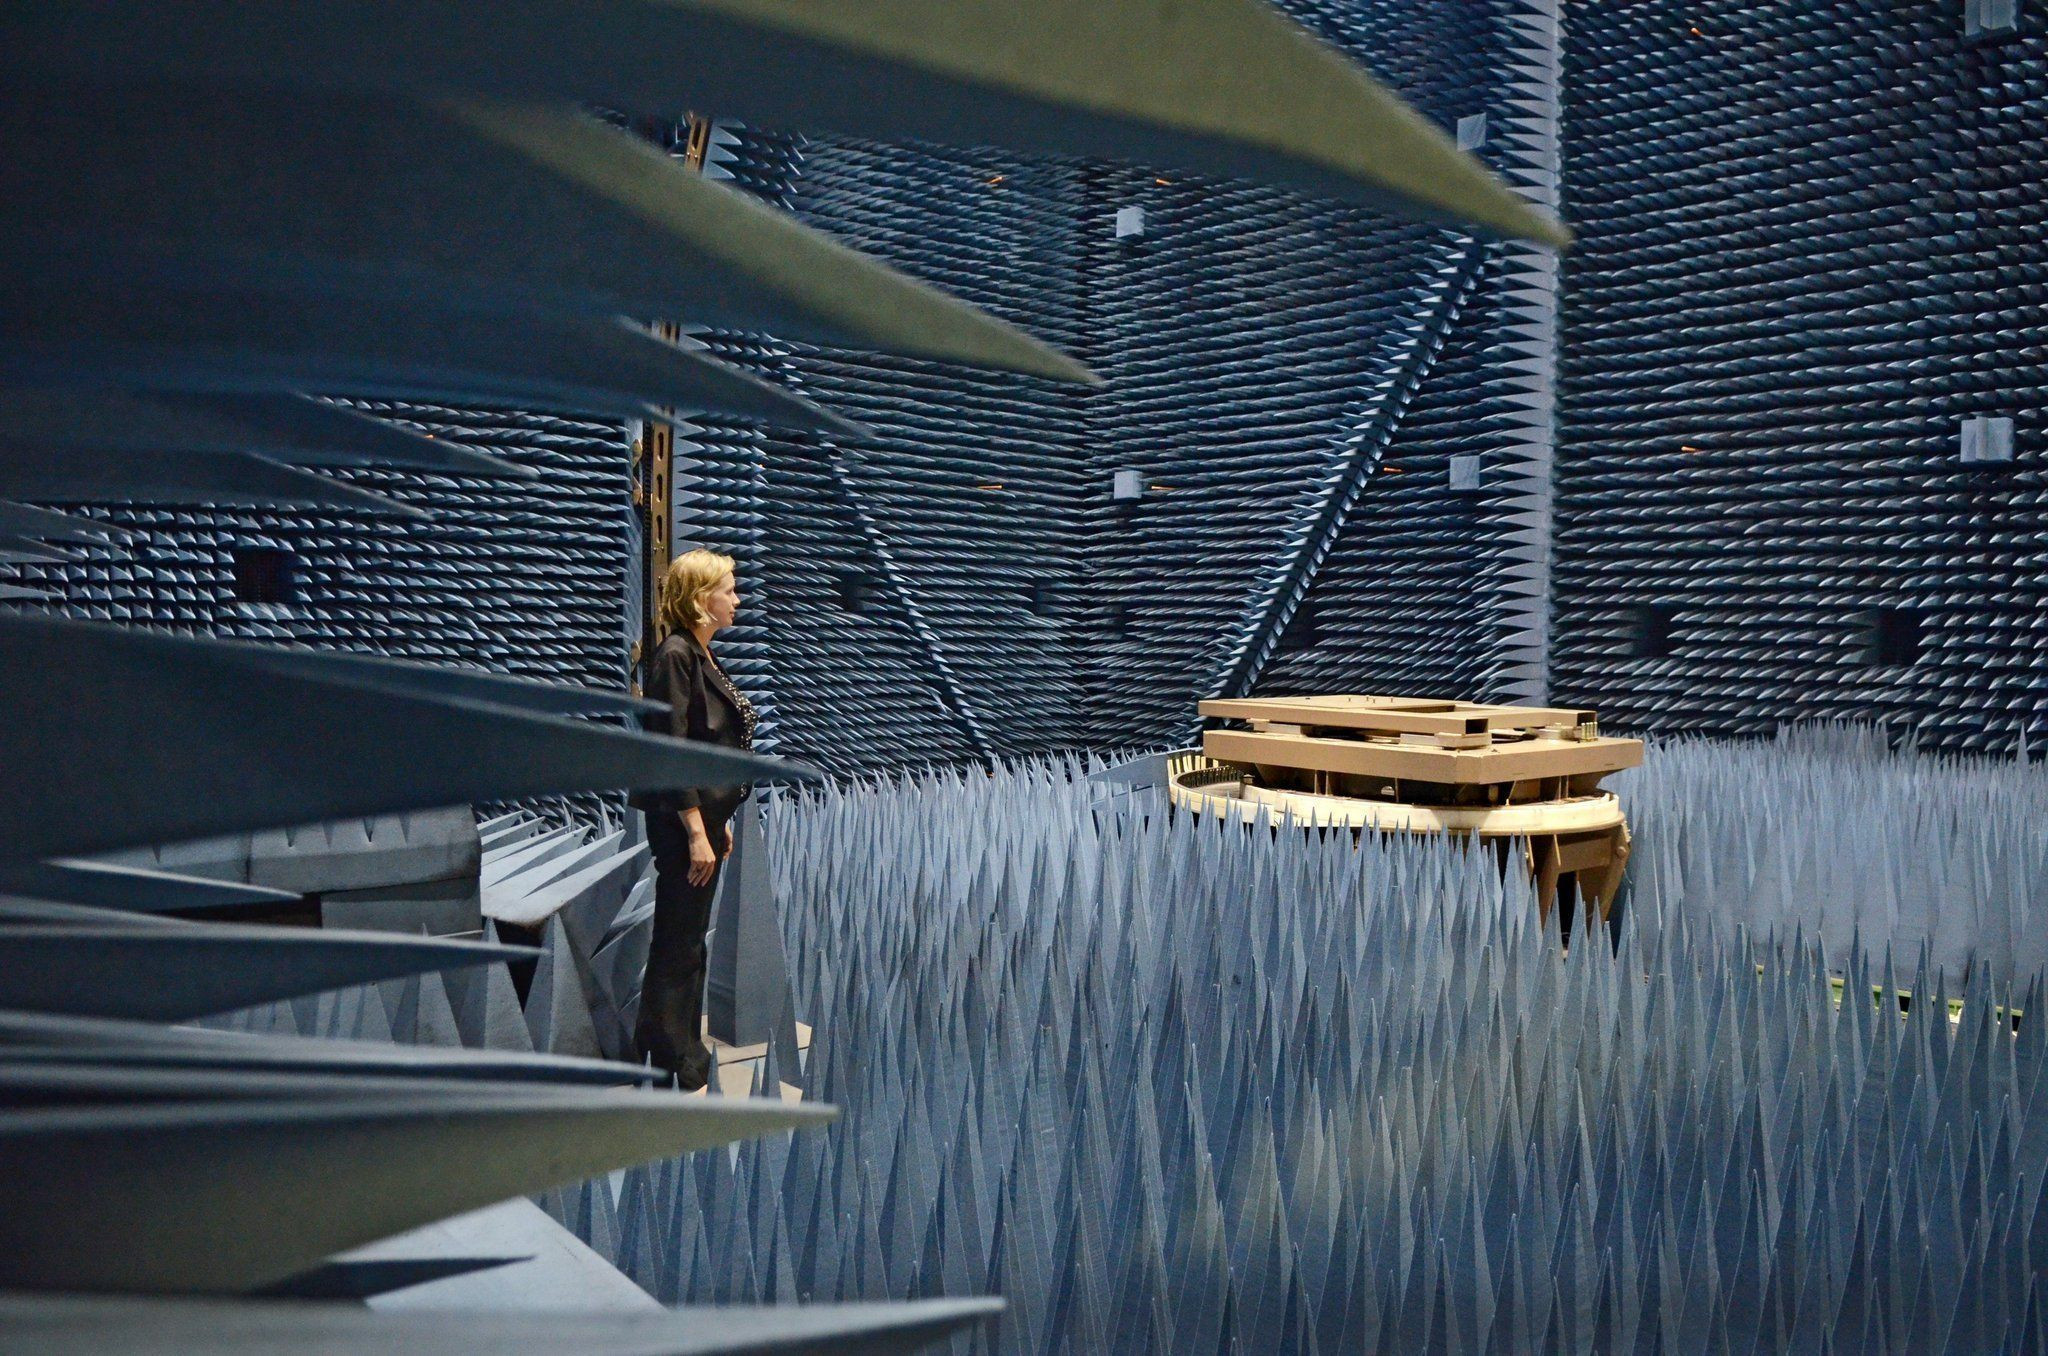 hardwood floor installation syracuse ny of lockheed martin abandons secret plan to shut suburban syracuse plant throughout lockheed martin anechoic chamber syracuse new york